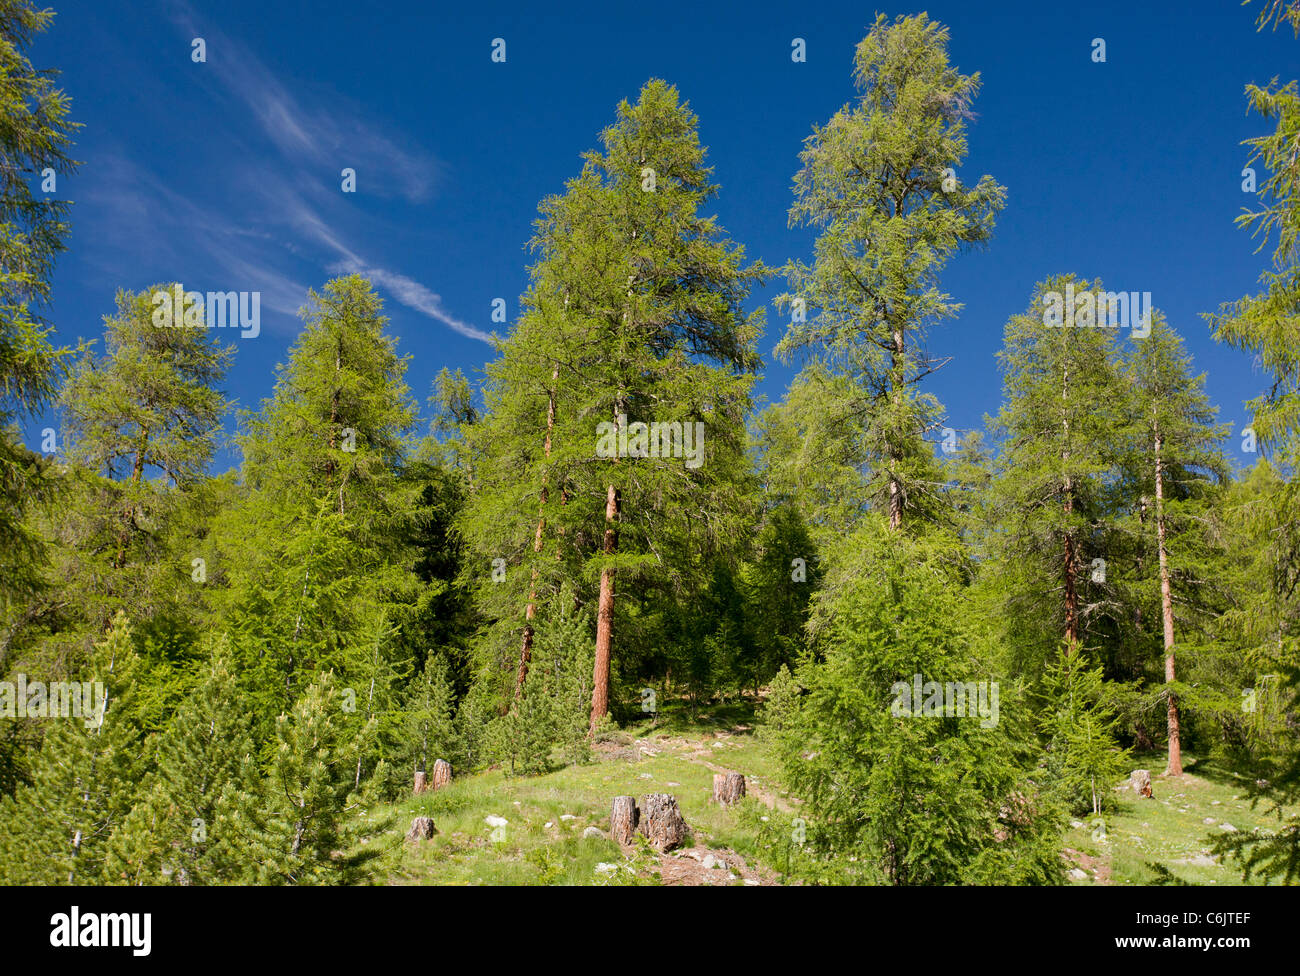 Managed natural Larch forest, Larix decidua, in the Upper Engadin valley, alps, Switzerland. - Stock Image